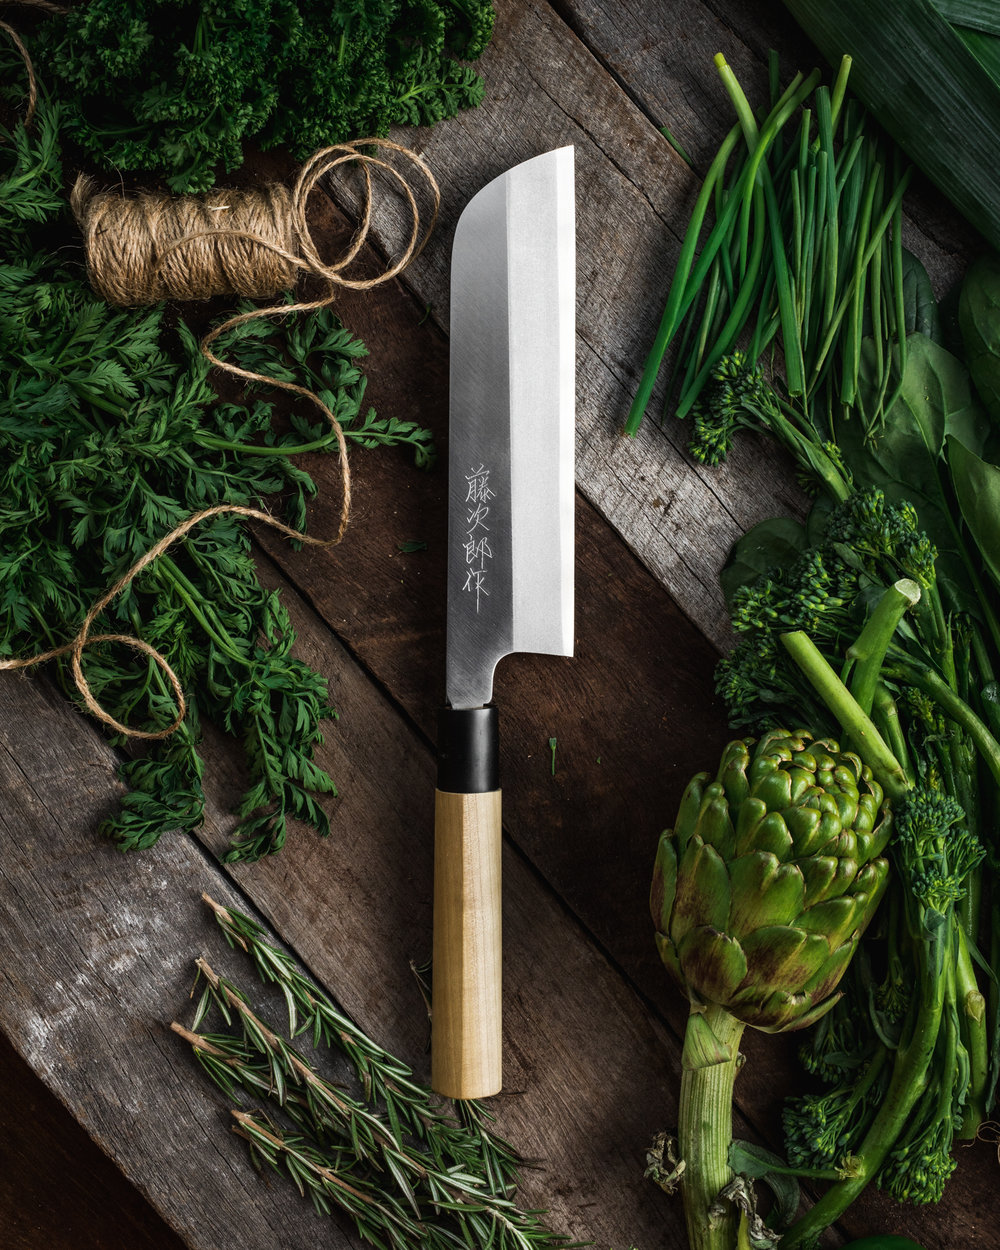 Samuel_Hesketh_Photography_Food_and_Style-Knive_2-1.jpg